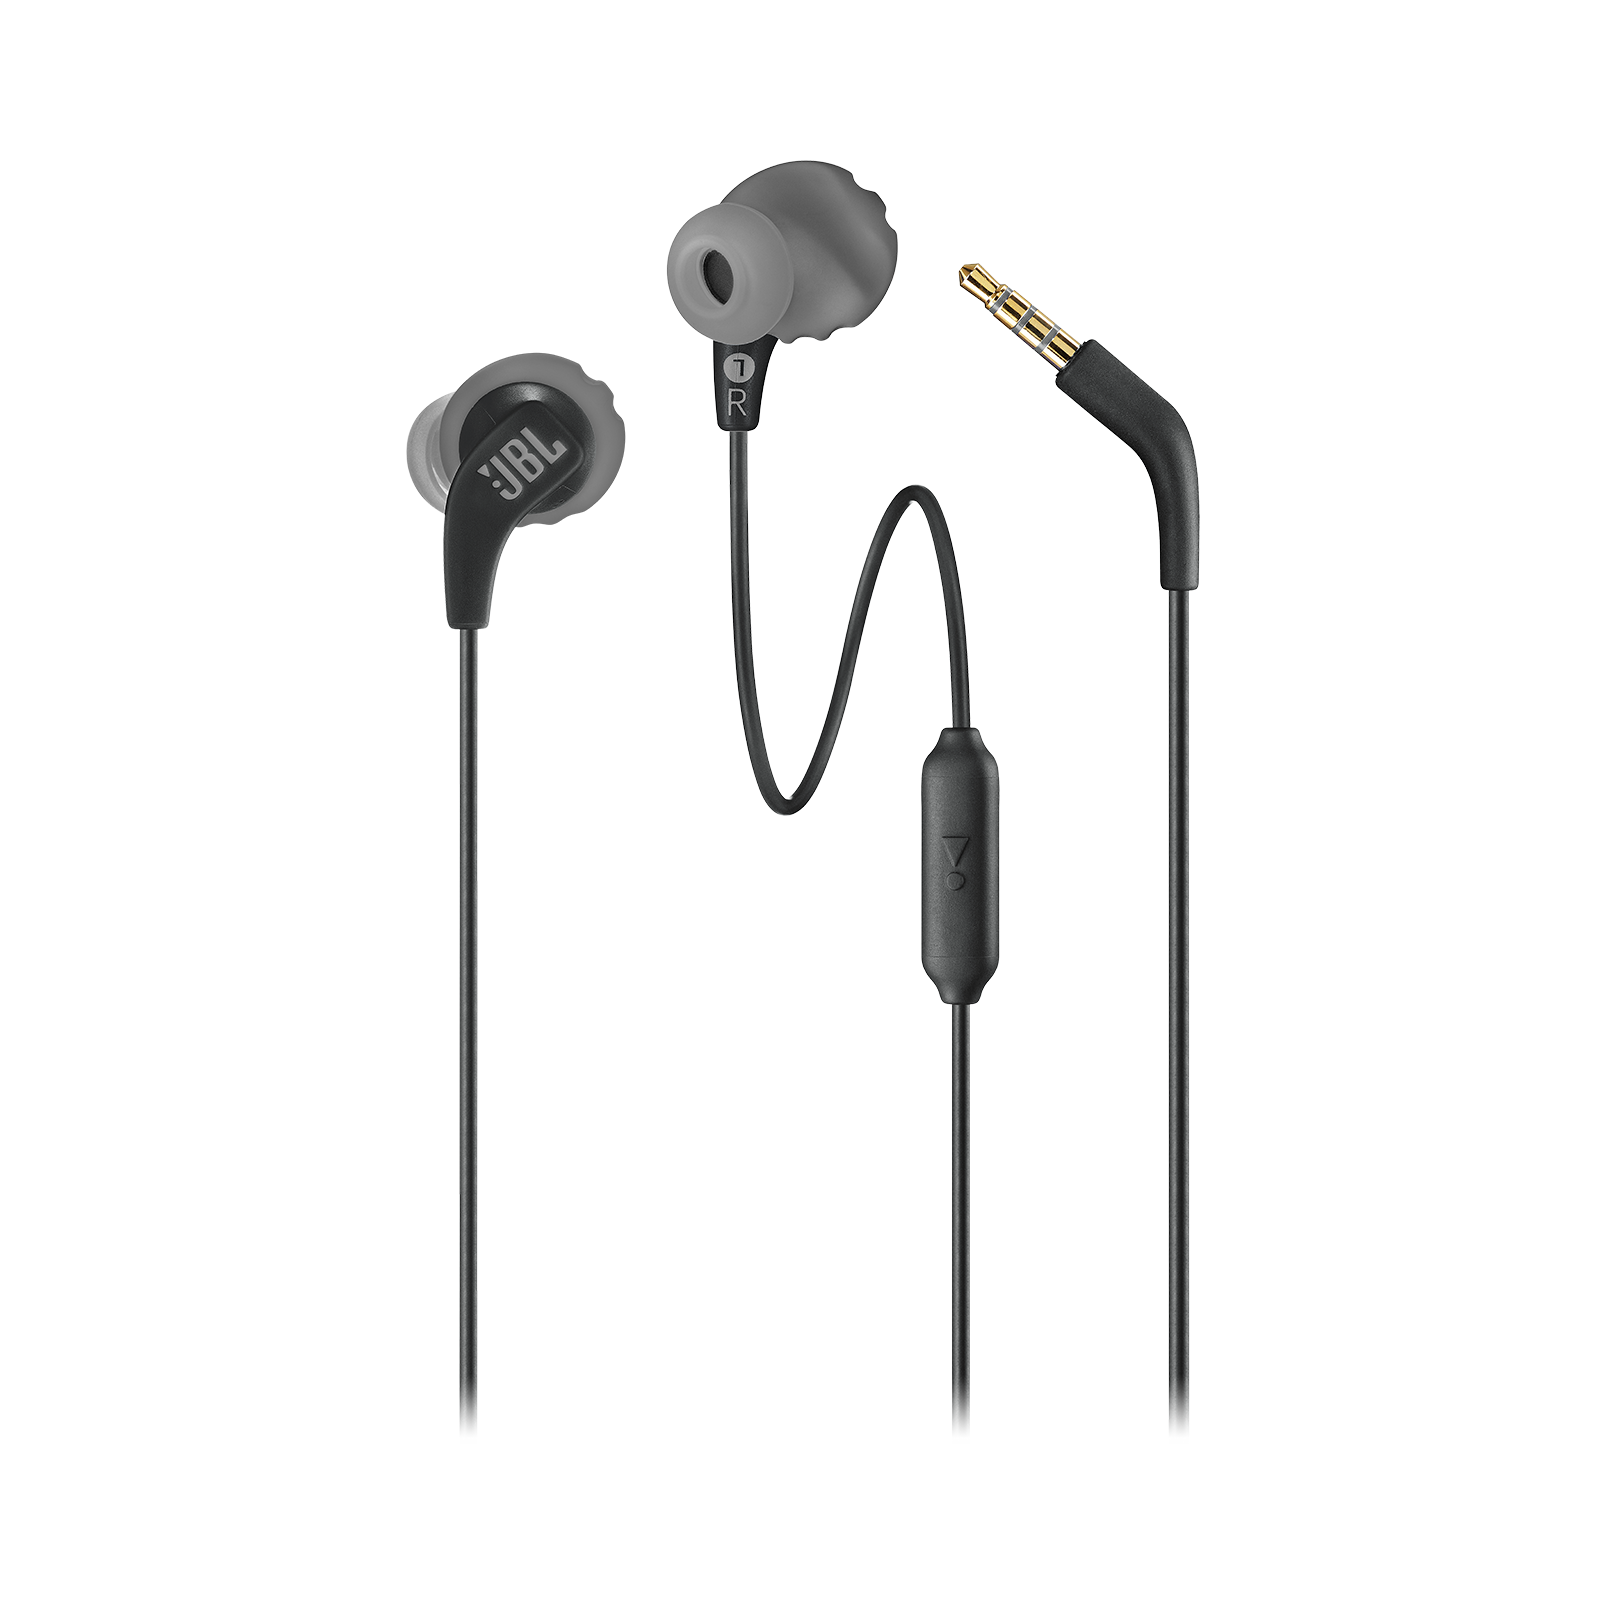 Jbl Endurance Run Sweatproof Wired Sports In Ear Headphones